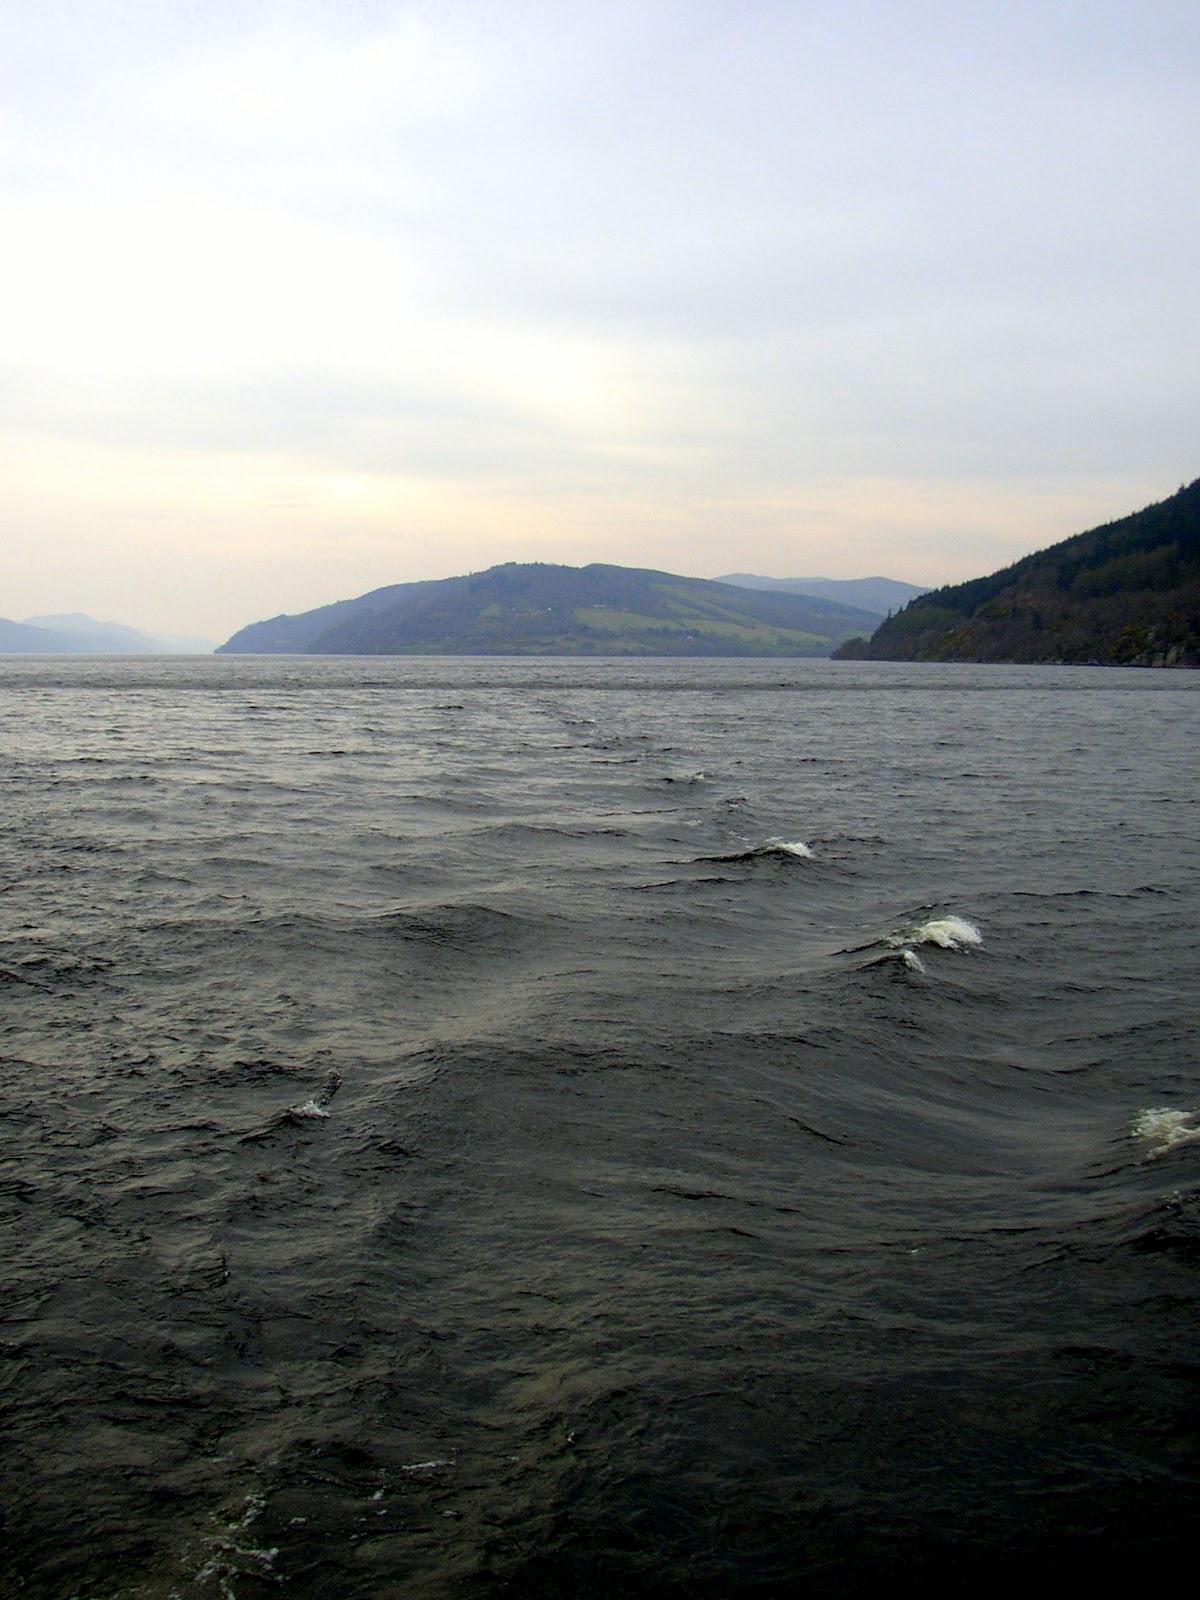 loch ness women The loch ness monster has certainly coined it in for the highlands  weight loss success stories woman 'no boys liked' at school transformed after losing 6st and dropping 5 dress sizes.